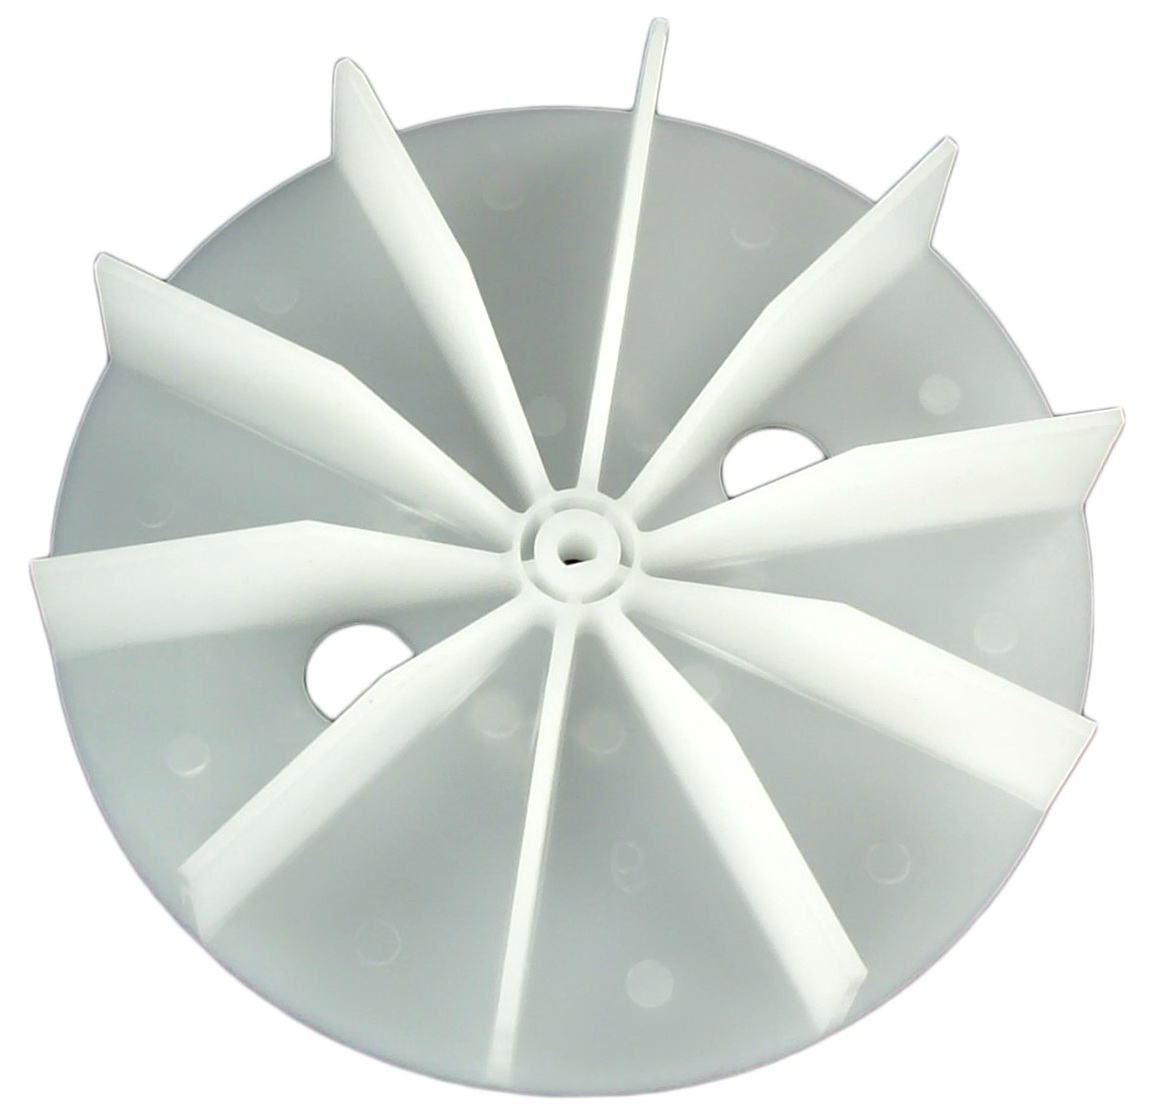 Broan Bathroom Fans Replacement Parts